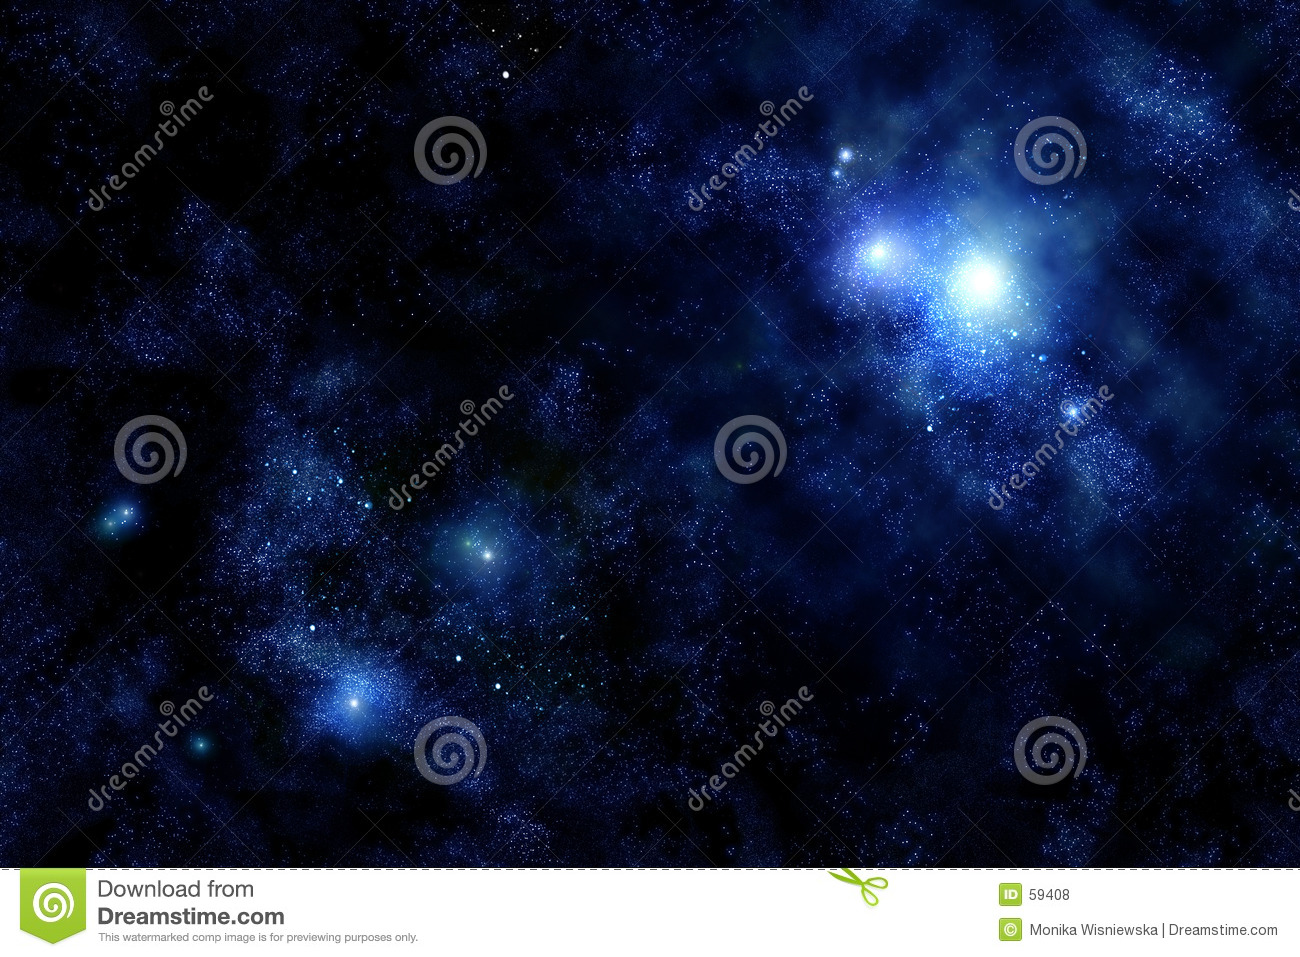 Univers - Starfield